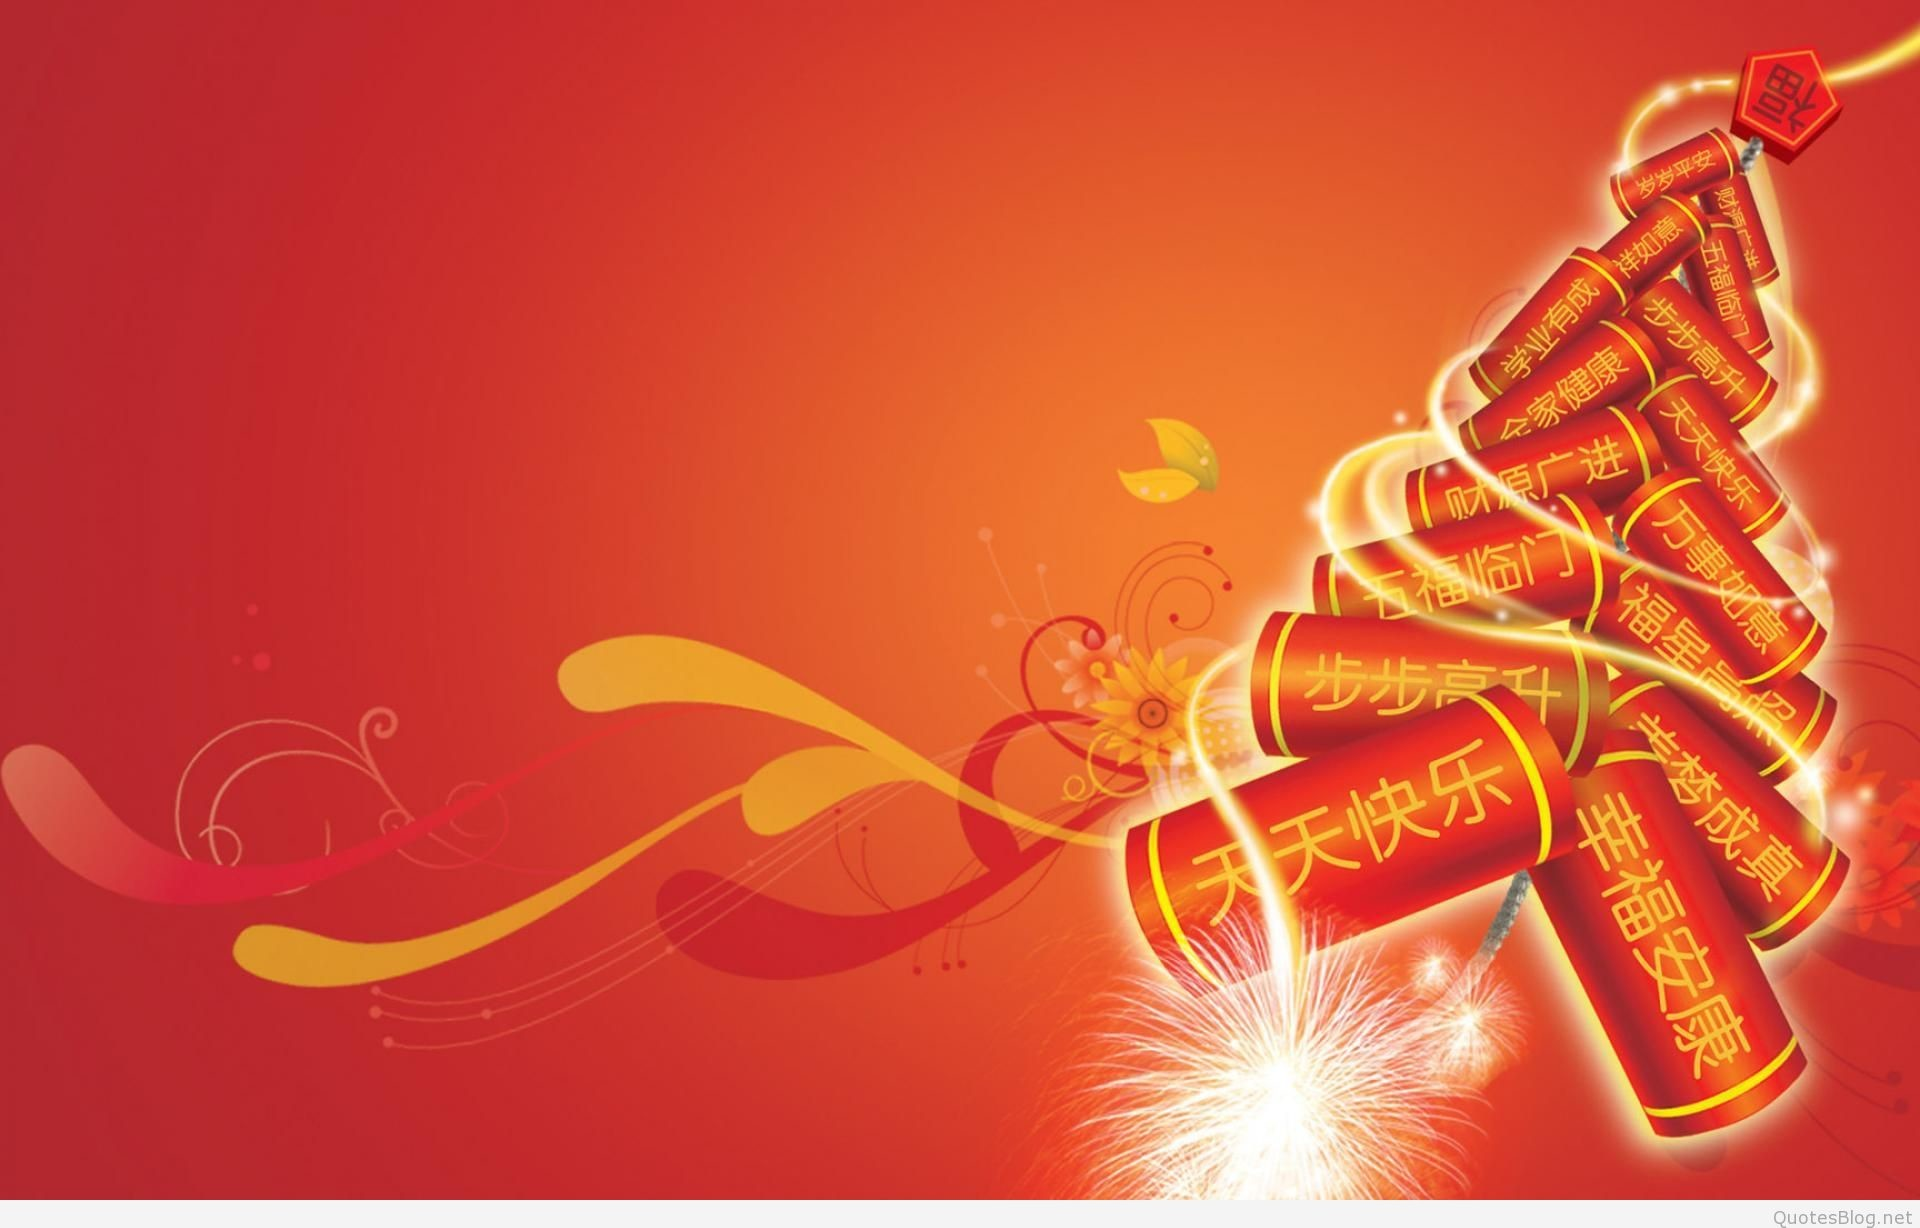 6975238-chinese-new-year-wallpaper ·  Holidays_New_Year_wallpapers_Champagne_in_the_New_Year_019085_